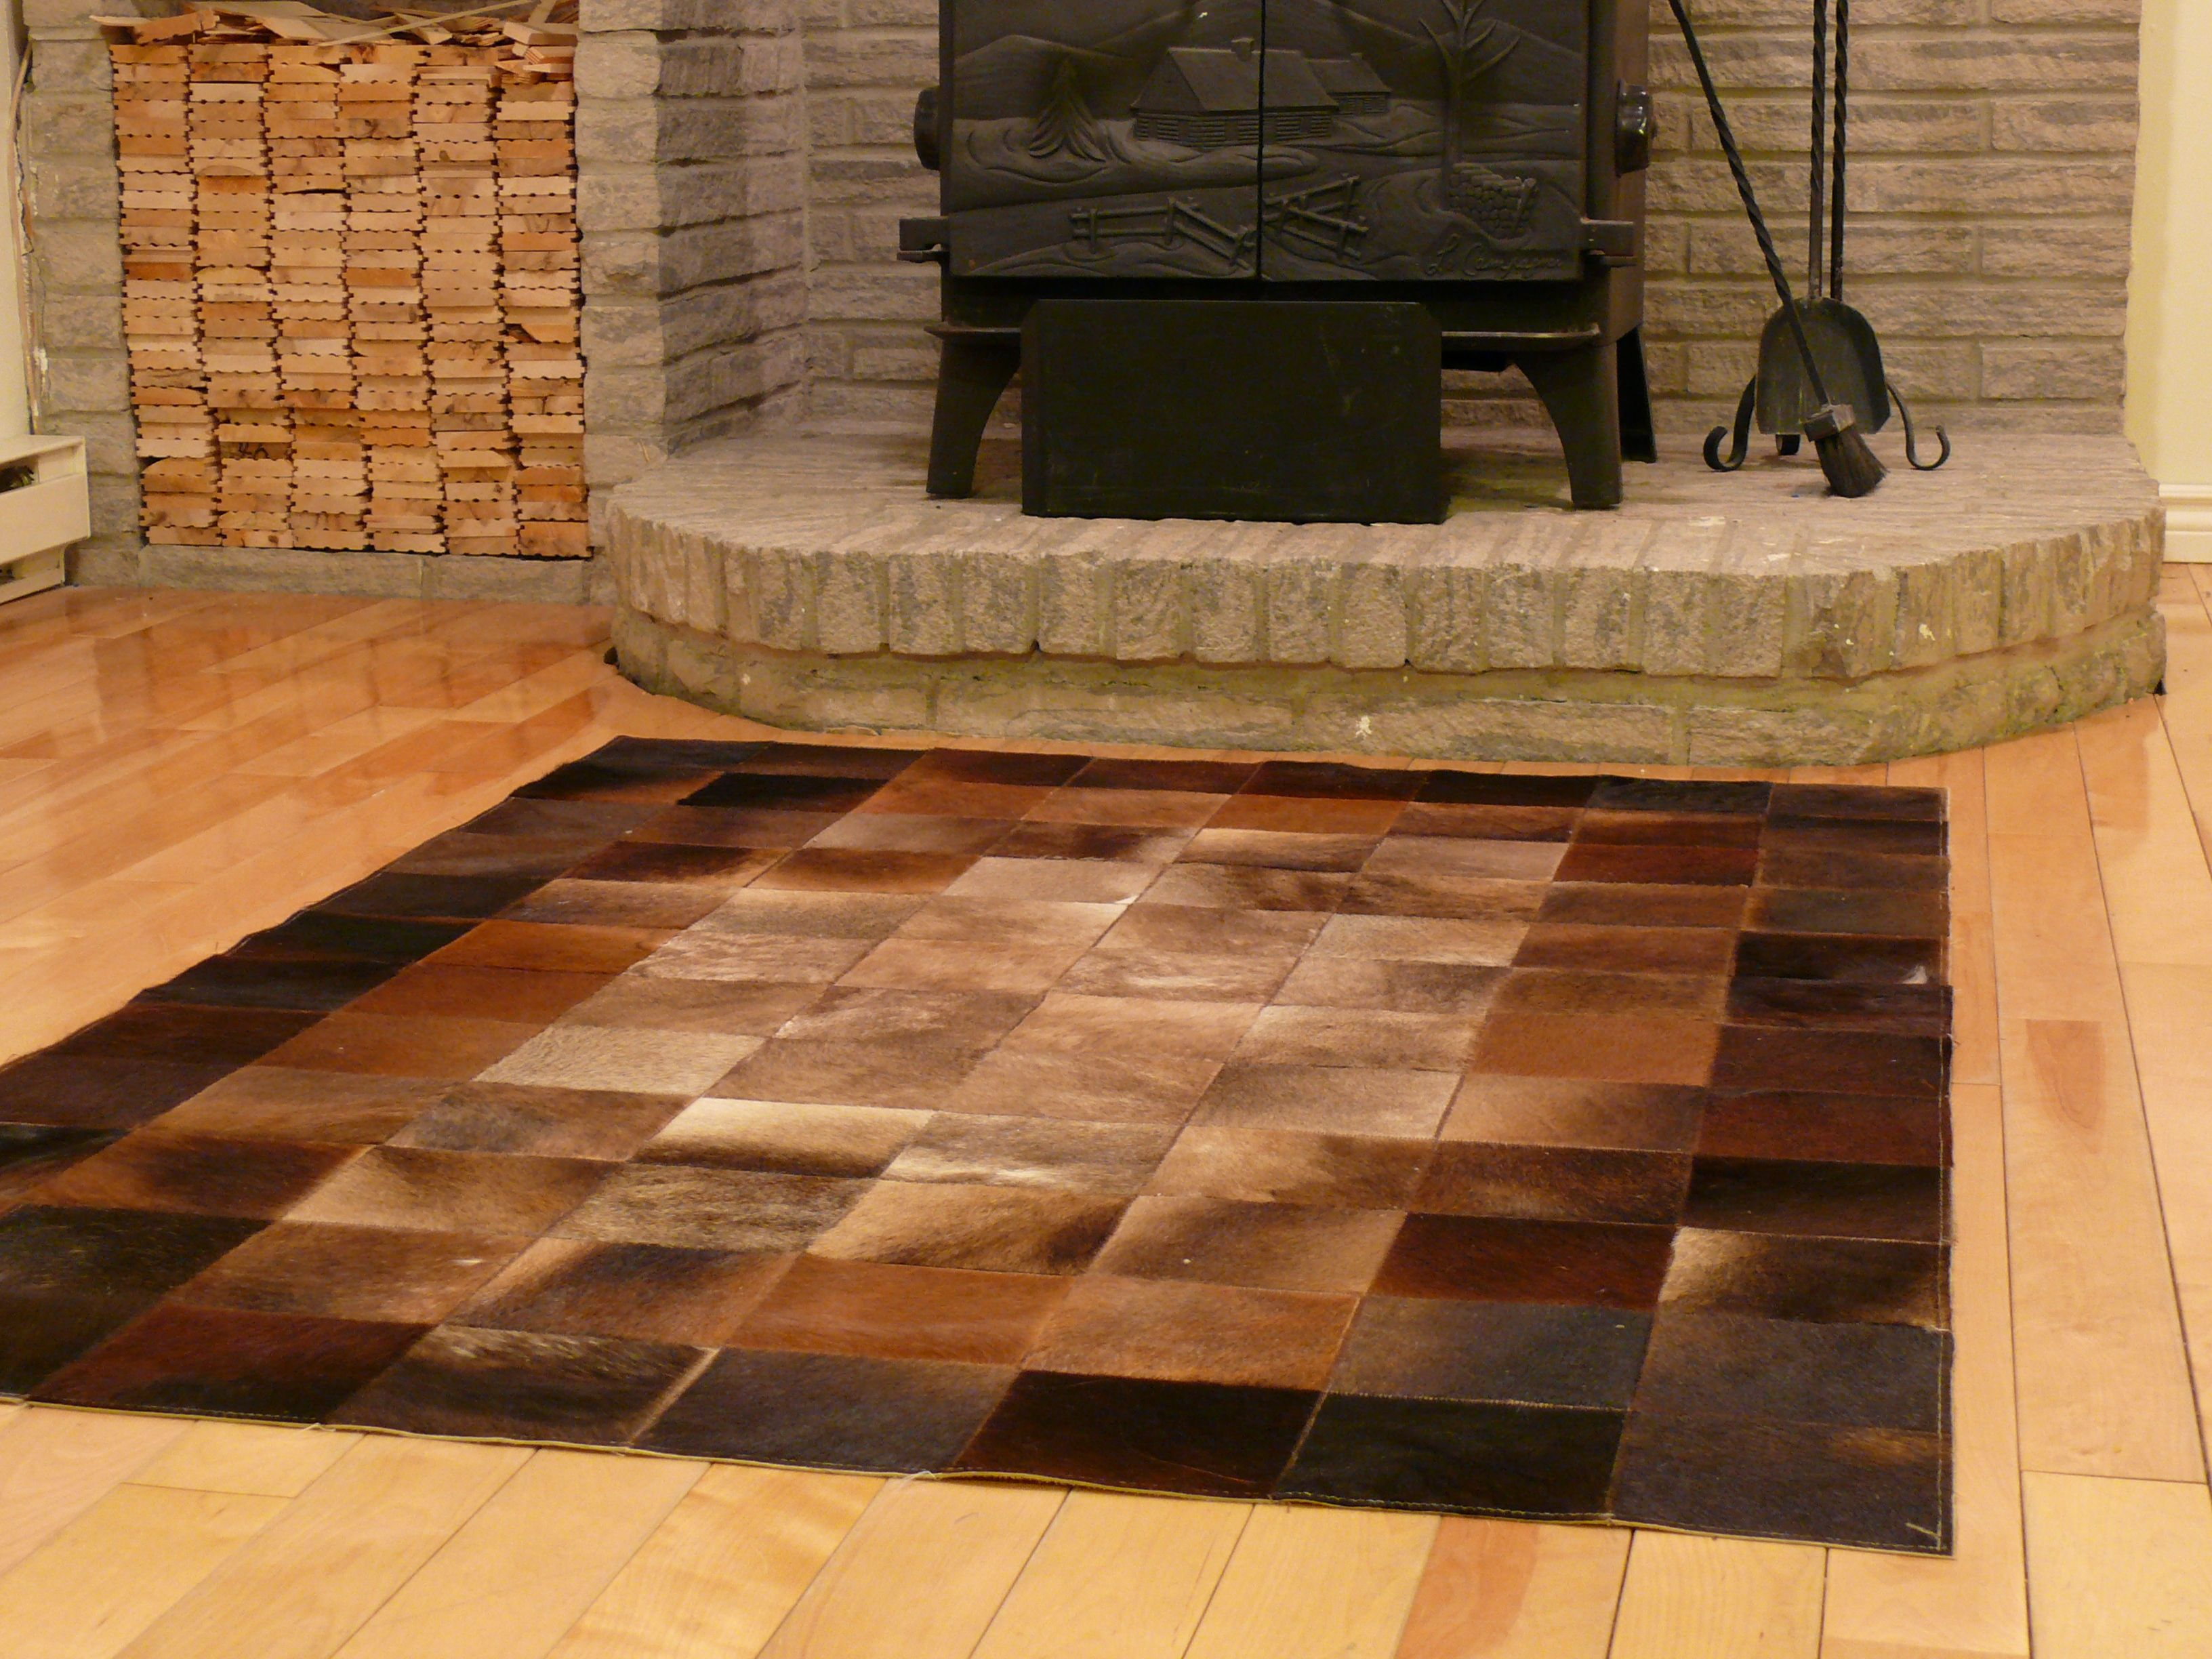 Rectangular patchwork cowhide rug with square shape inside in brown tones.   Do you have a room with a lot of light? This area rug is perfect for bright spaces and will make your room look warmer and intimate.